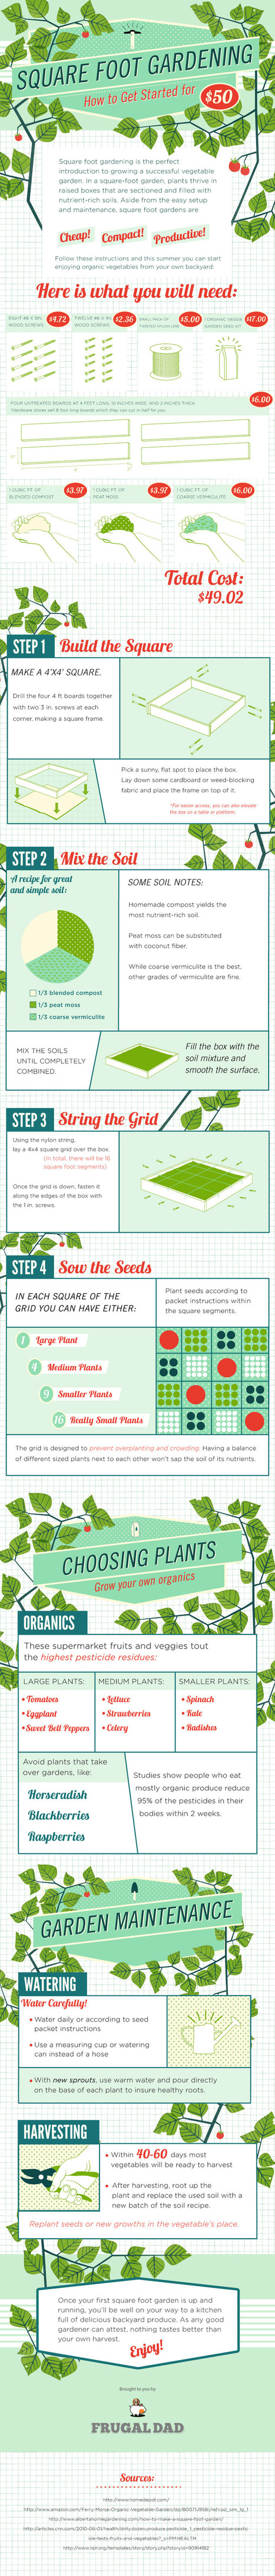 How to start your own square foot garden | Gardening Galore | Scoop.it